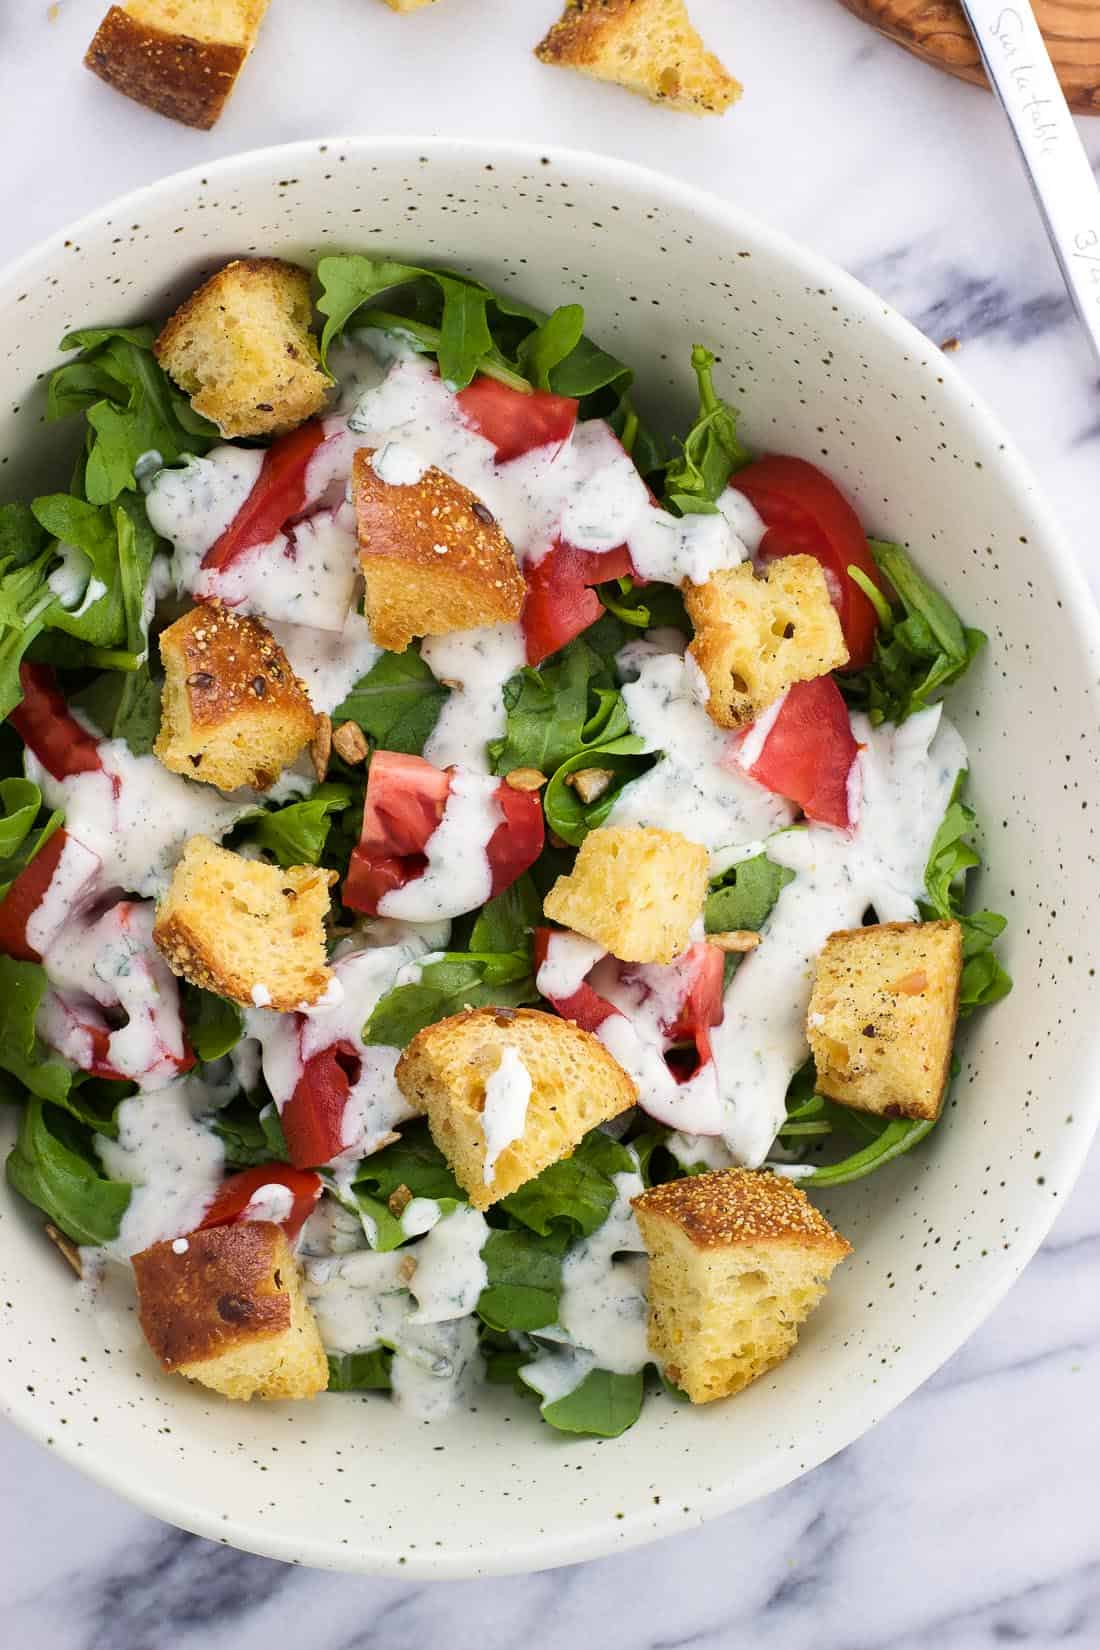 An overhead shot of homemade croutons in a salad with lettuce, tomatoes, and ranch salad dressing